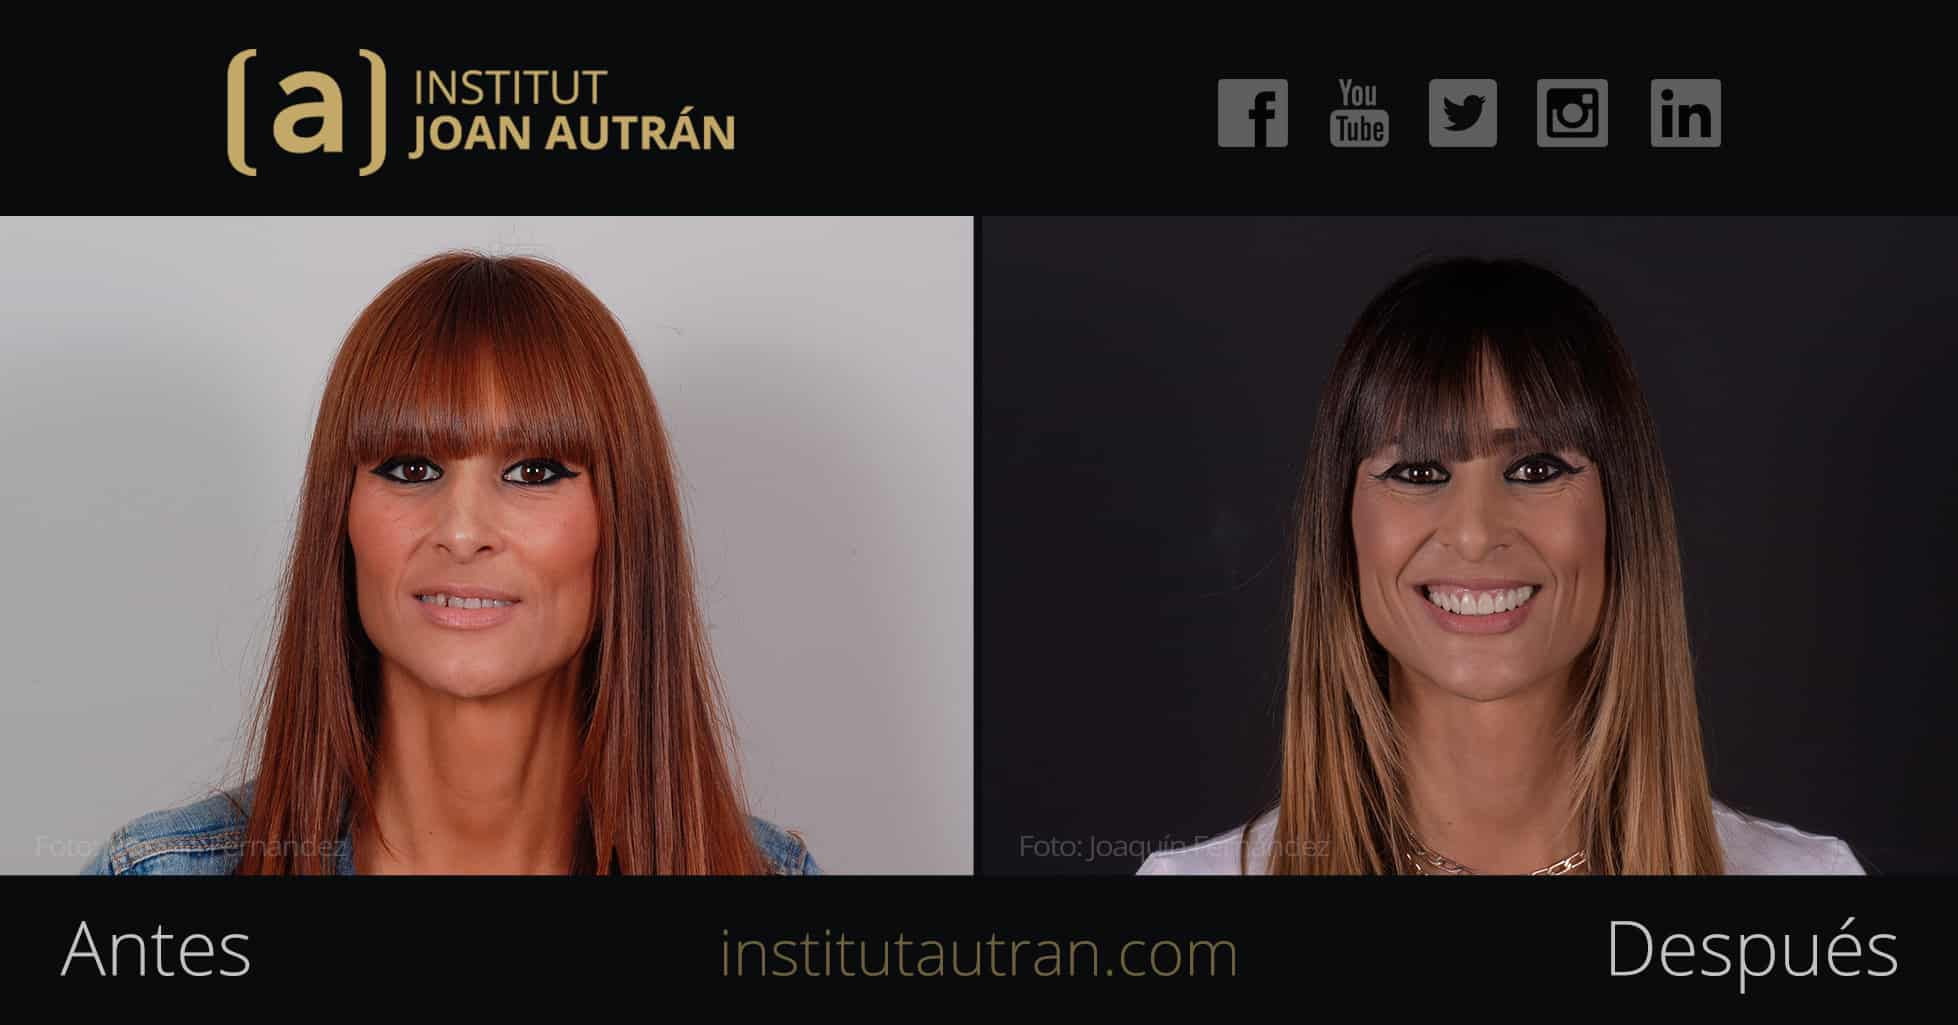 Caso 06 Video Testimonios | Institut Joan Autrán Estética Dental Barcelona